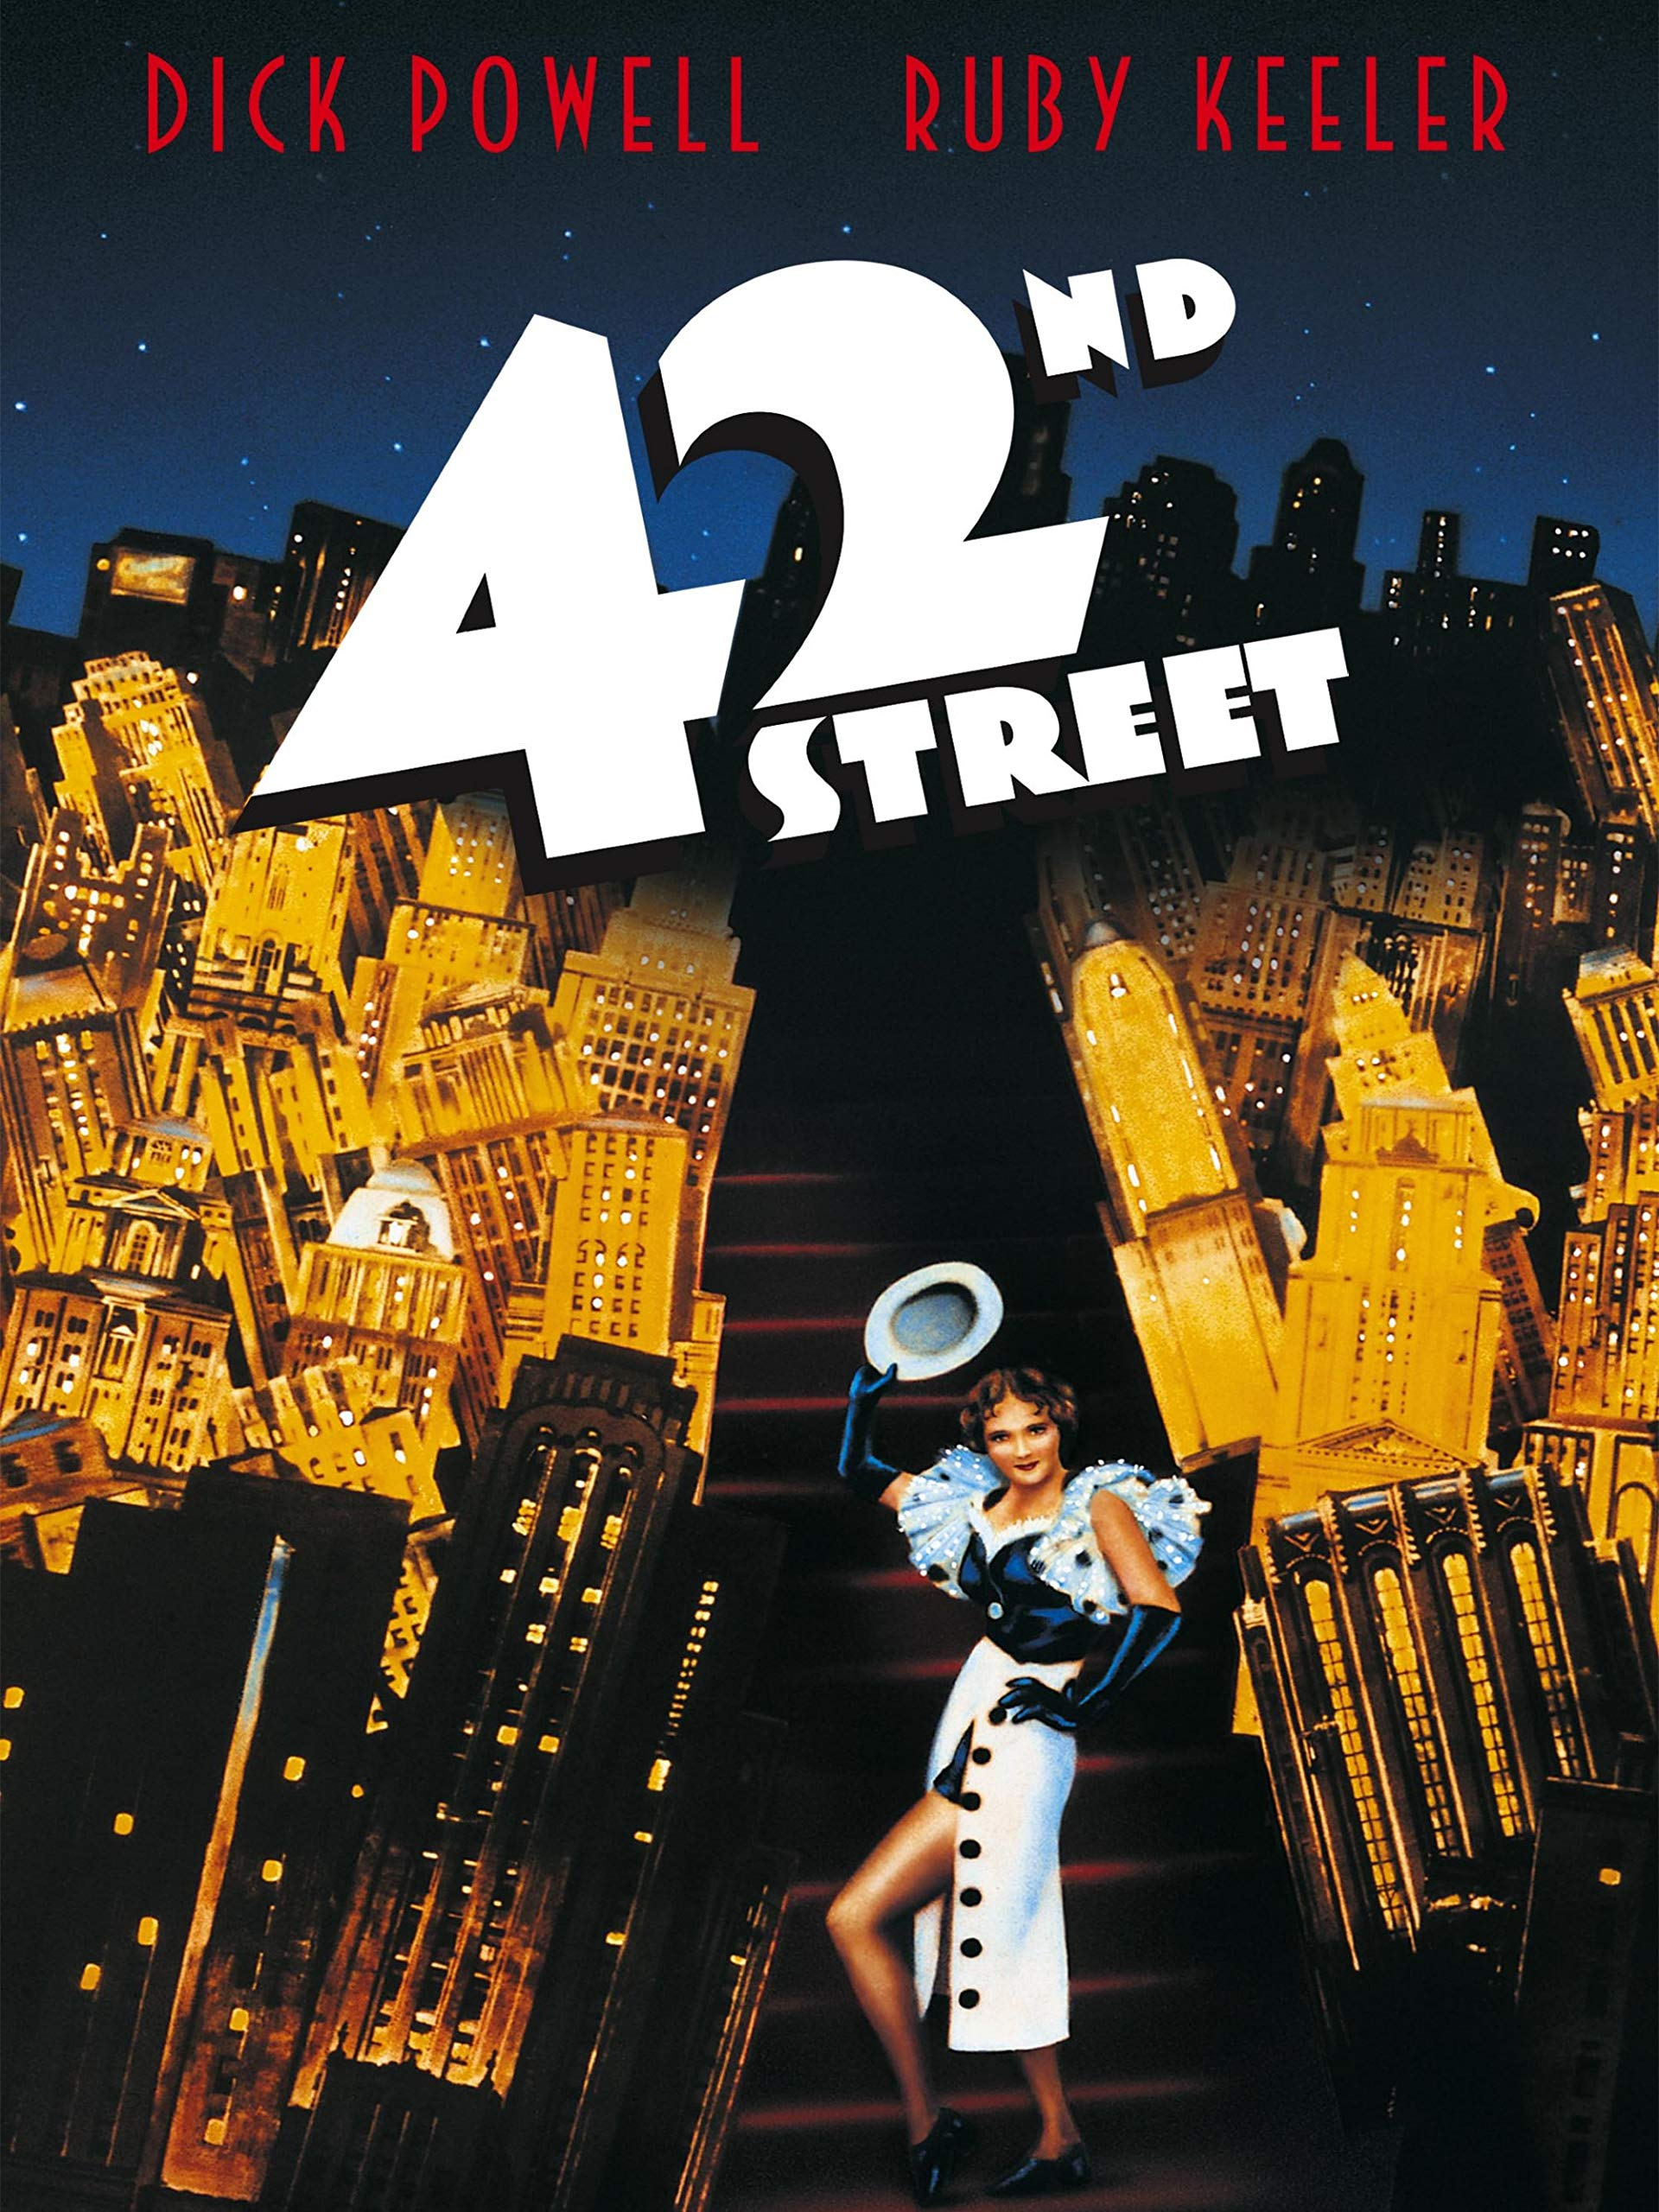 42nd Street (1933) starring Ruby Keeler, Dick Powell, Warner Baxter